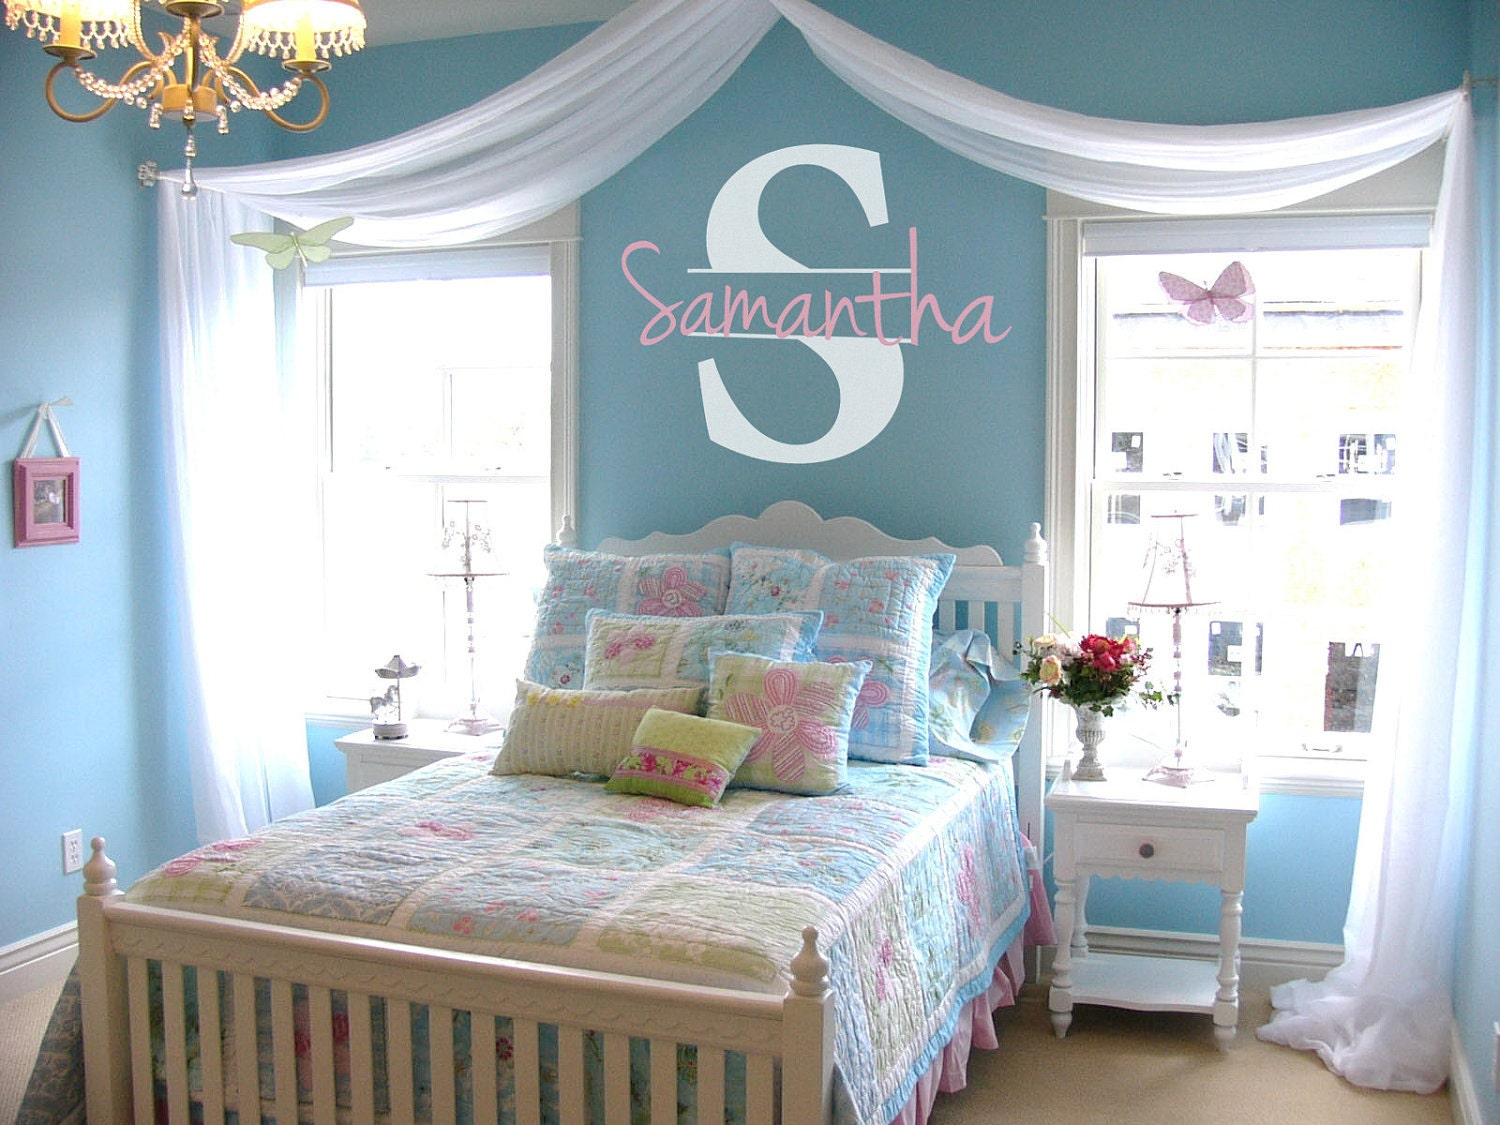 Personalized name initial vinyl wall decal sticker - Small girls bedroom decor ...